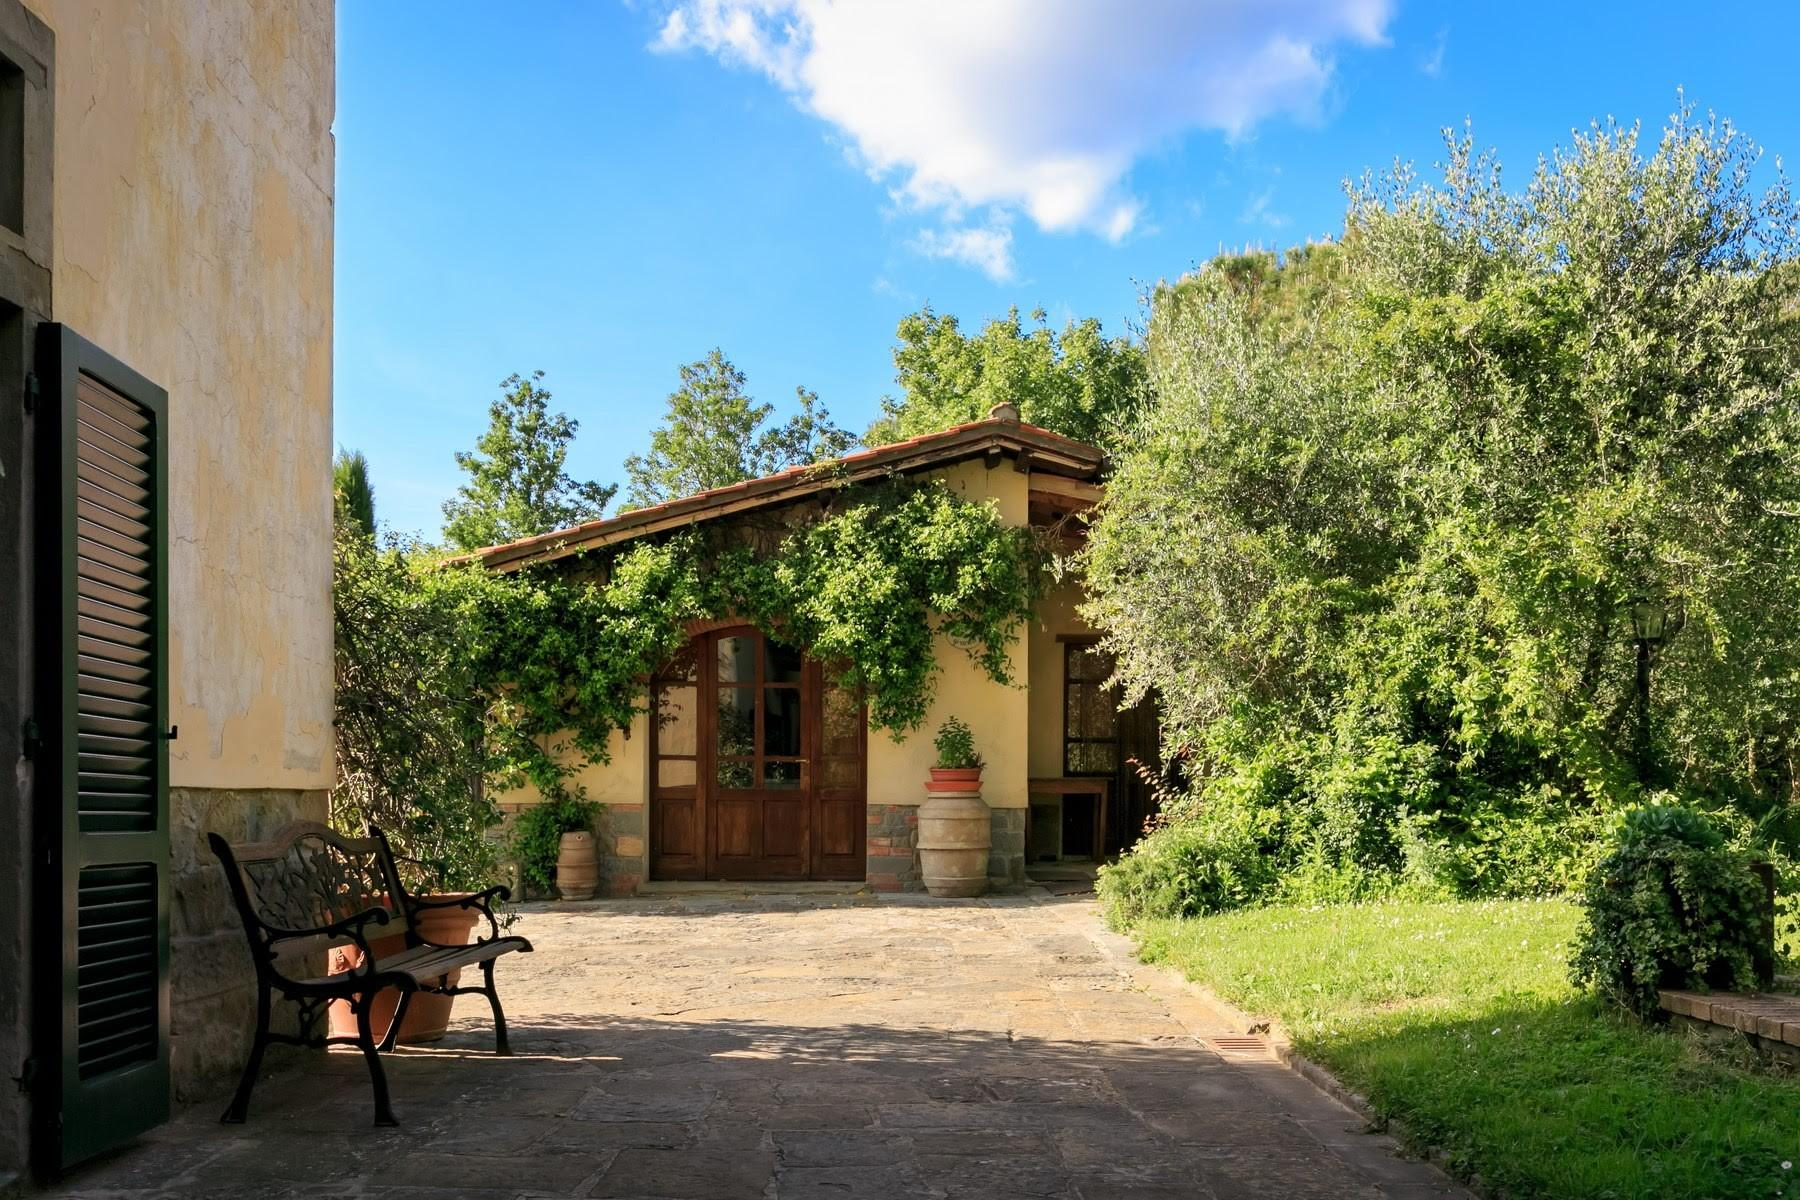 Agritourismo and Biodynamic farm in the heart of Tuscany with 15 ha of land. - 23